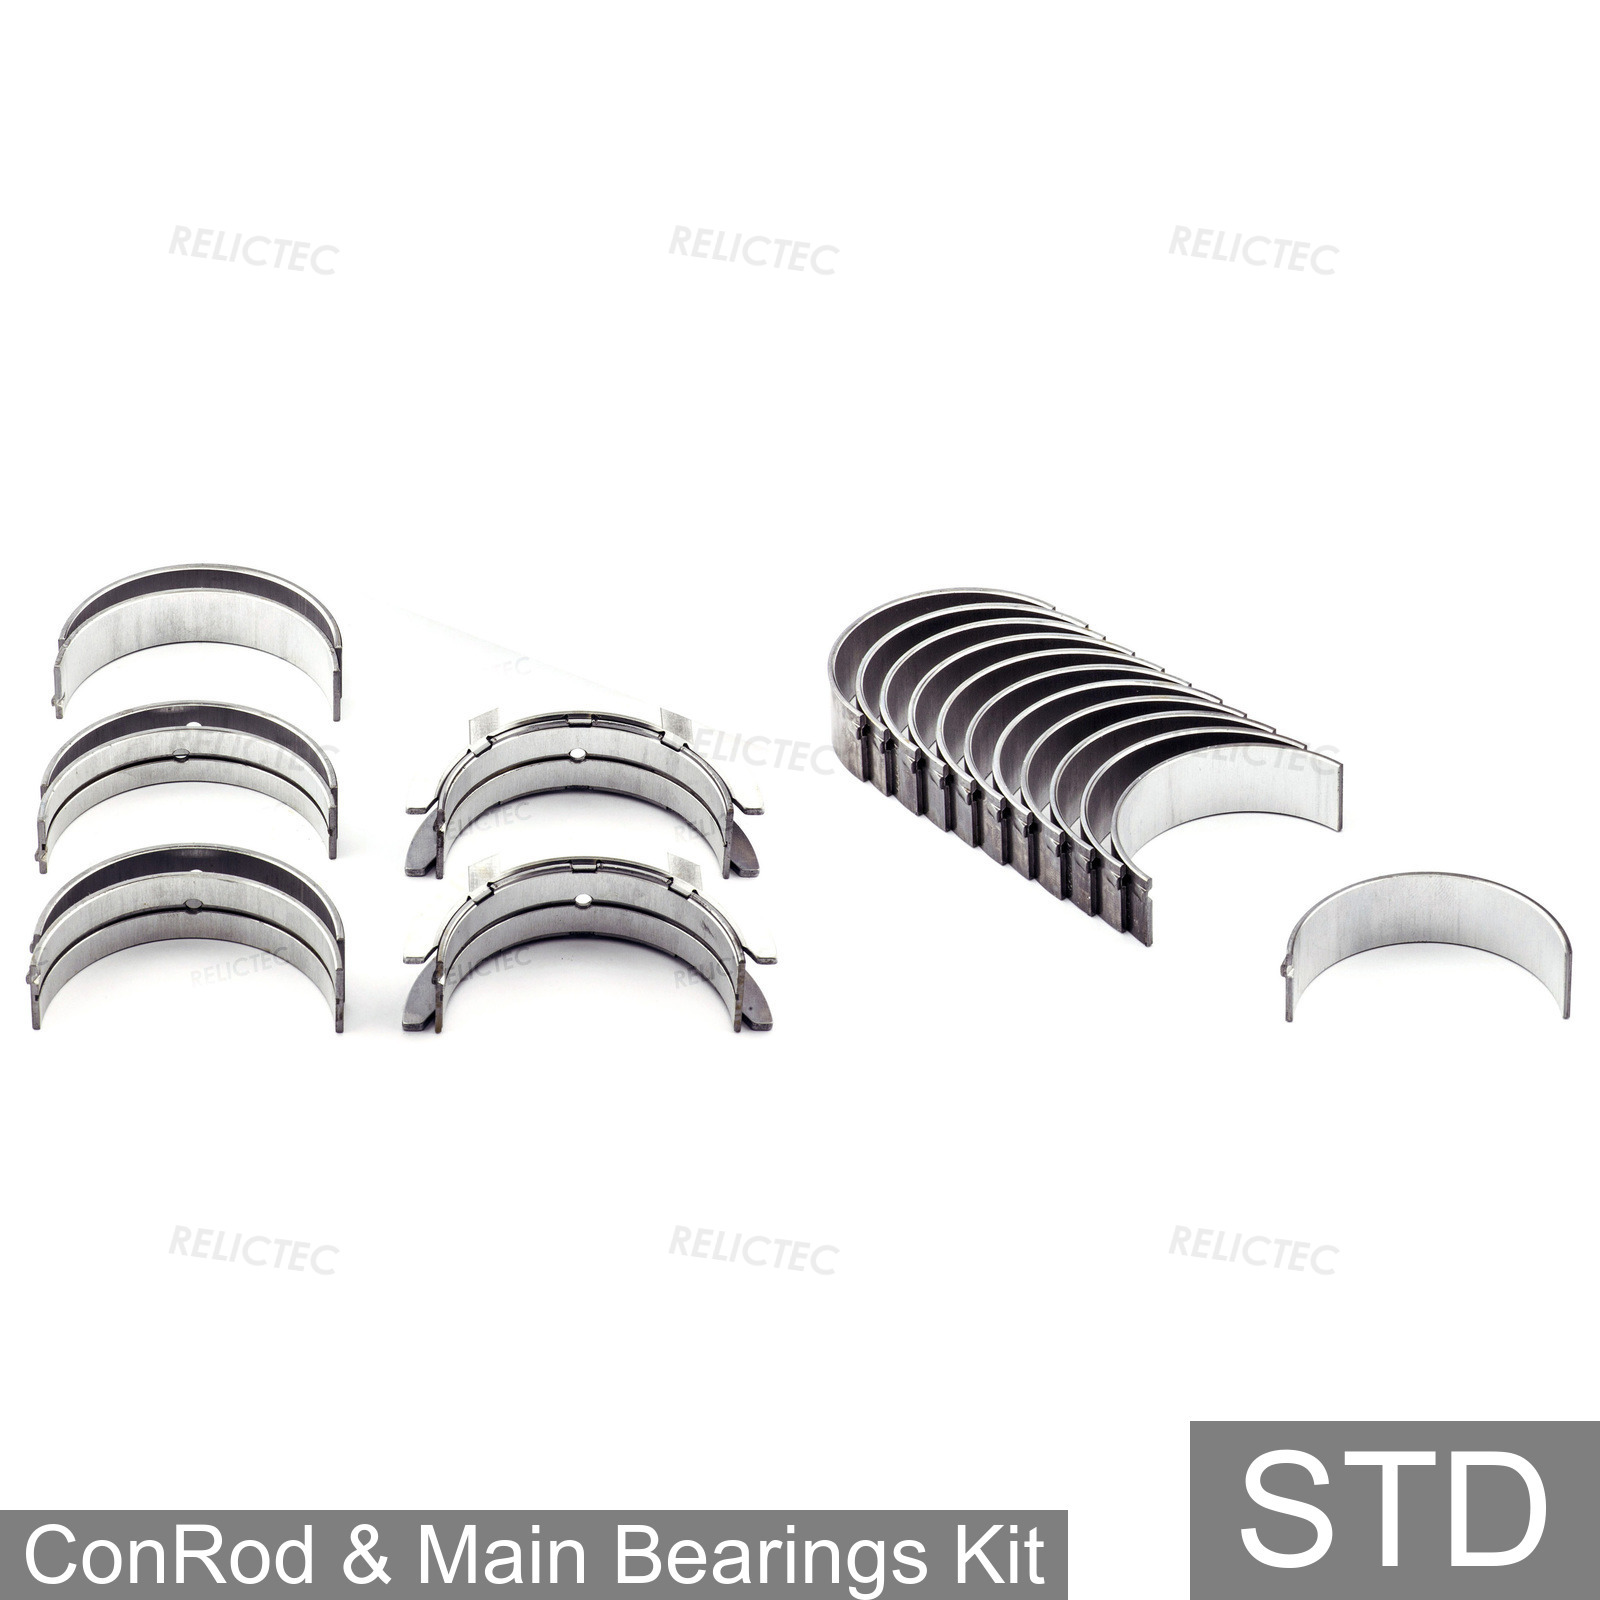 CONROD BIGEND BEARINGS 0.25MM FOR OPEL VAUXHALL VECTRA A 86 87 CALIBRA A 85 25